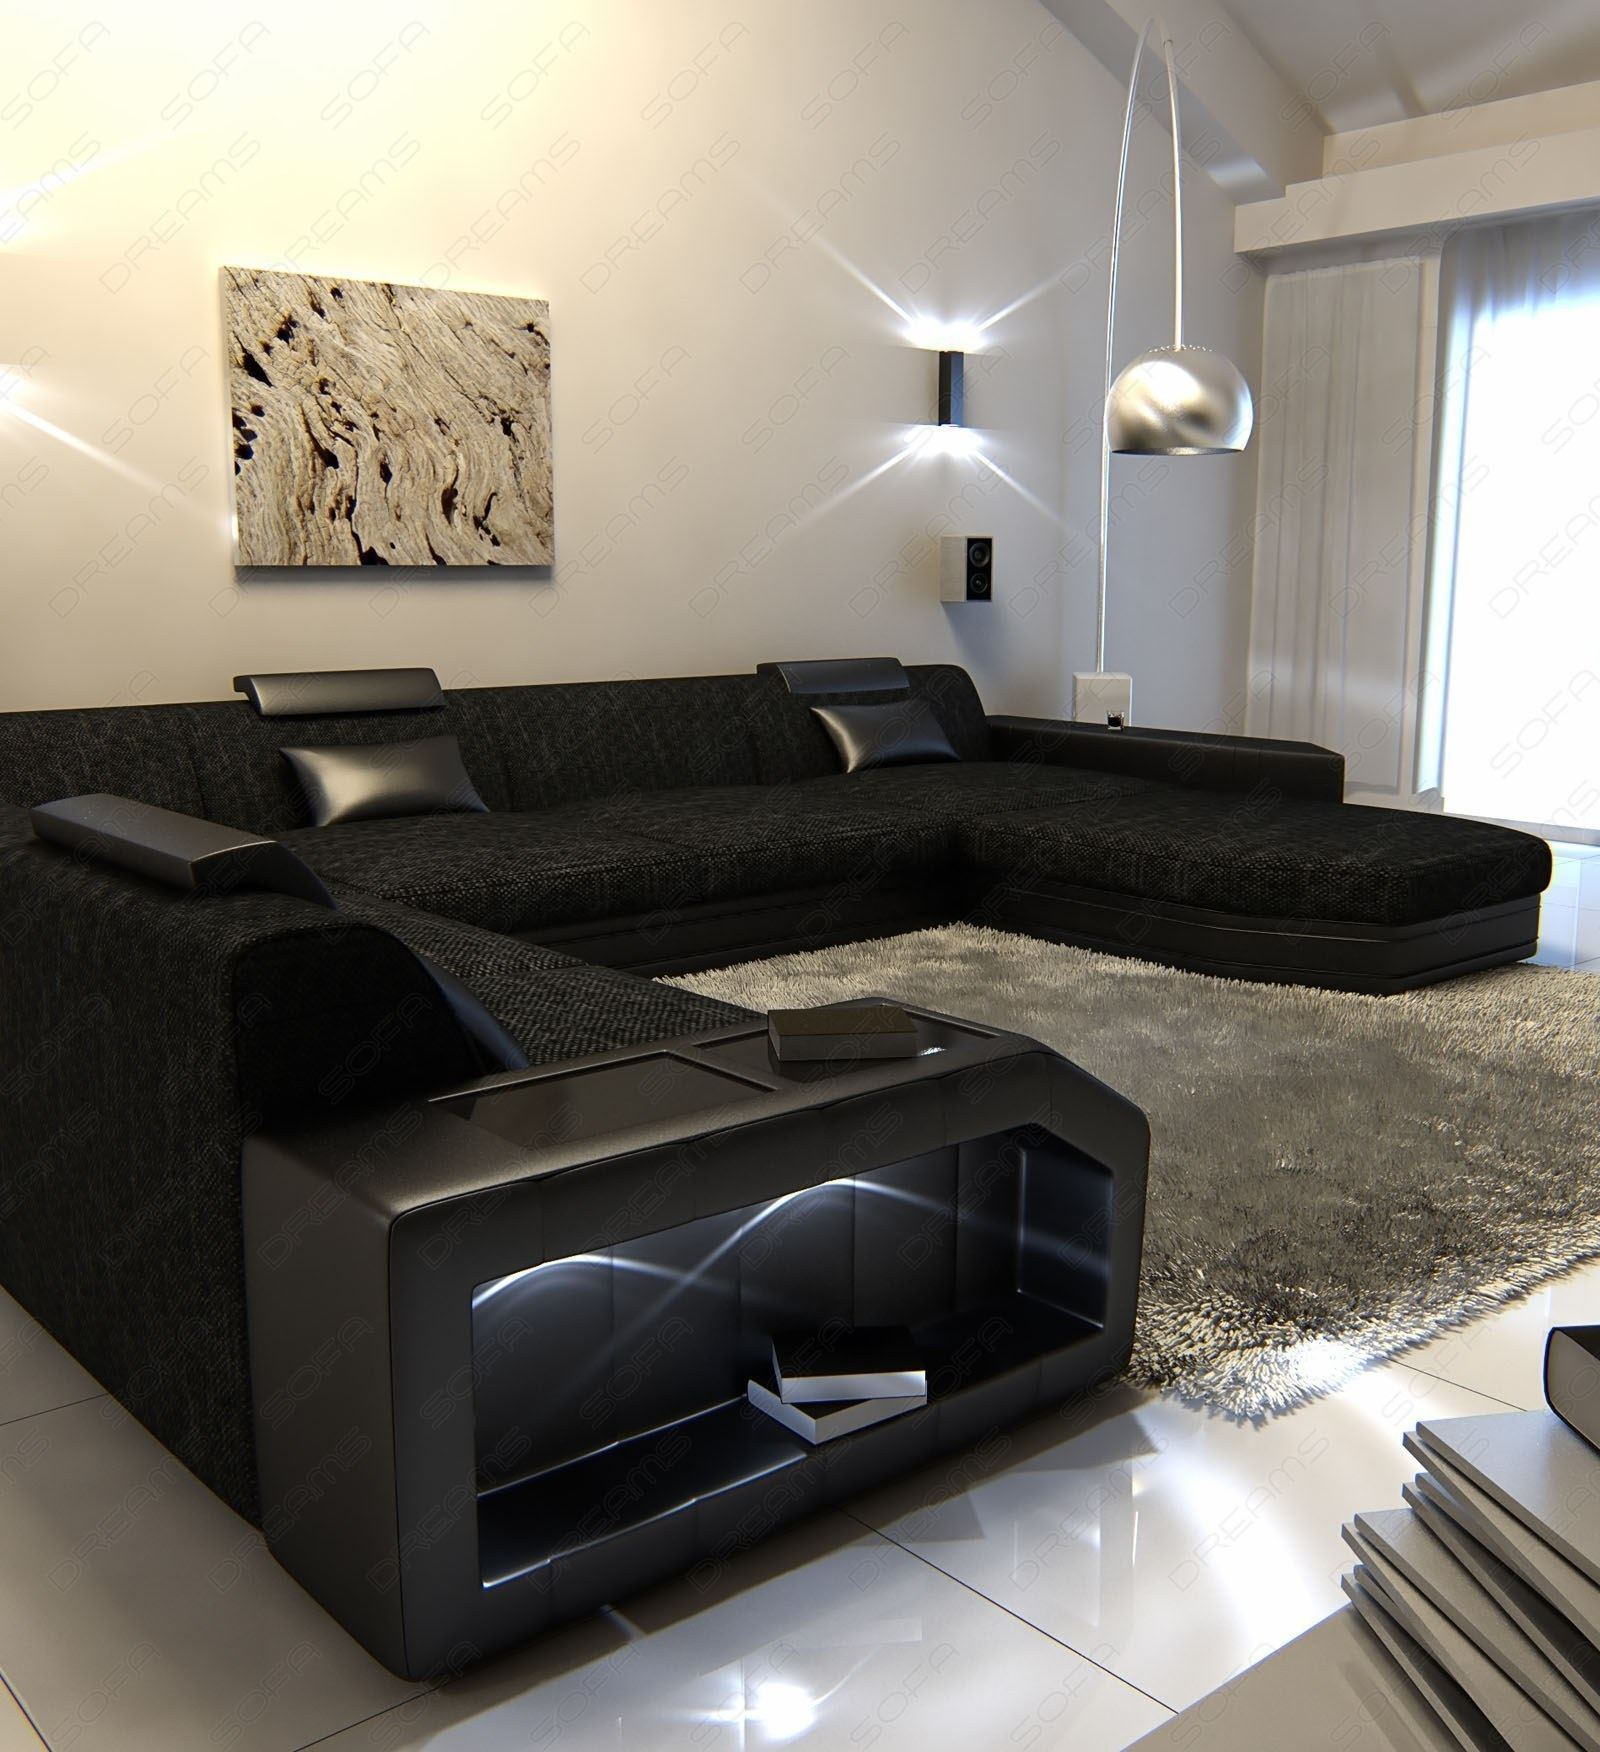 fabric sectional sofa prato xxl design sofa with led lighting rgb. Black Bedroom Furniture Sets. Home Design Ideas